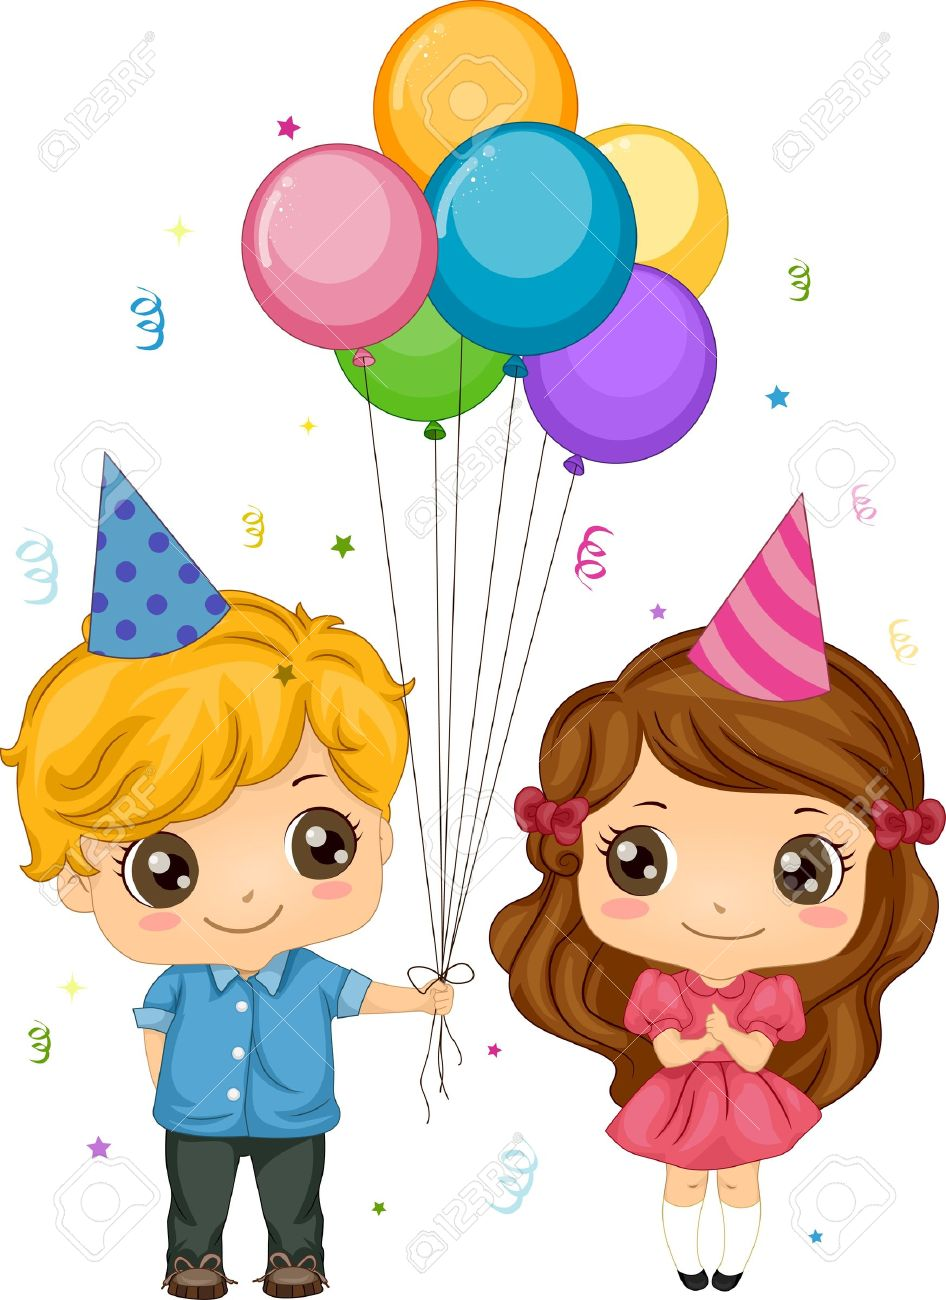 Clipartfest of balloons . A boy giving a ball to a boy clipart